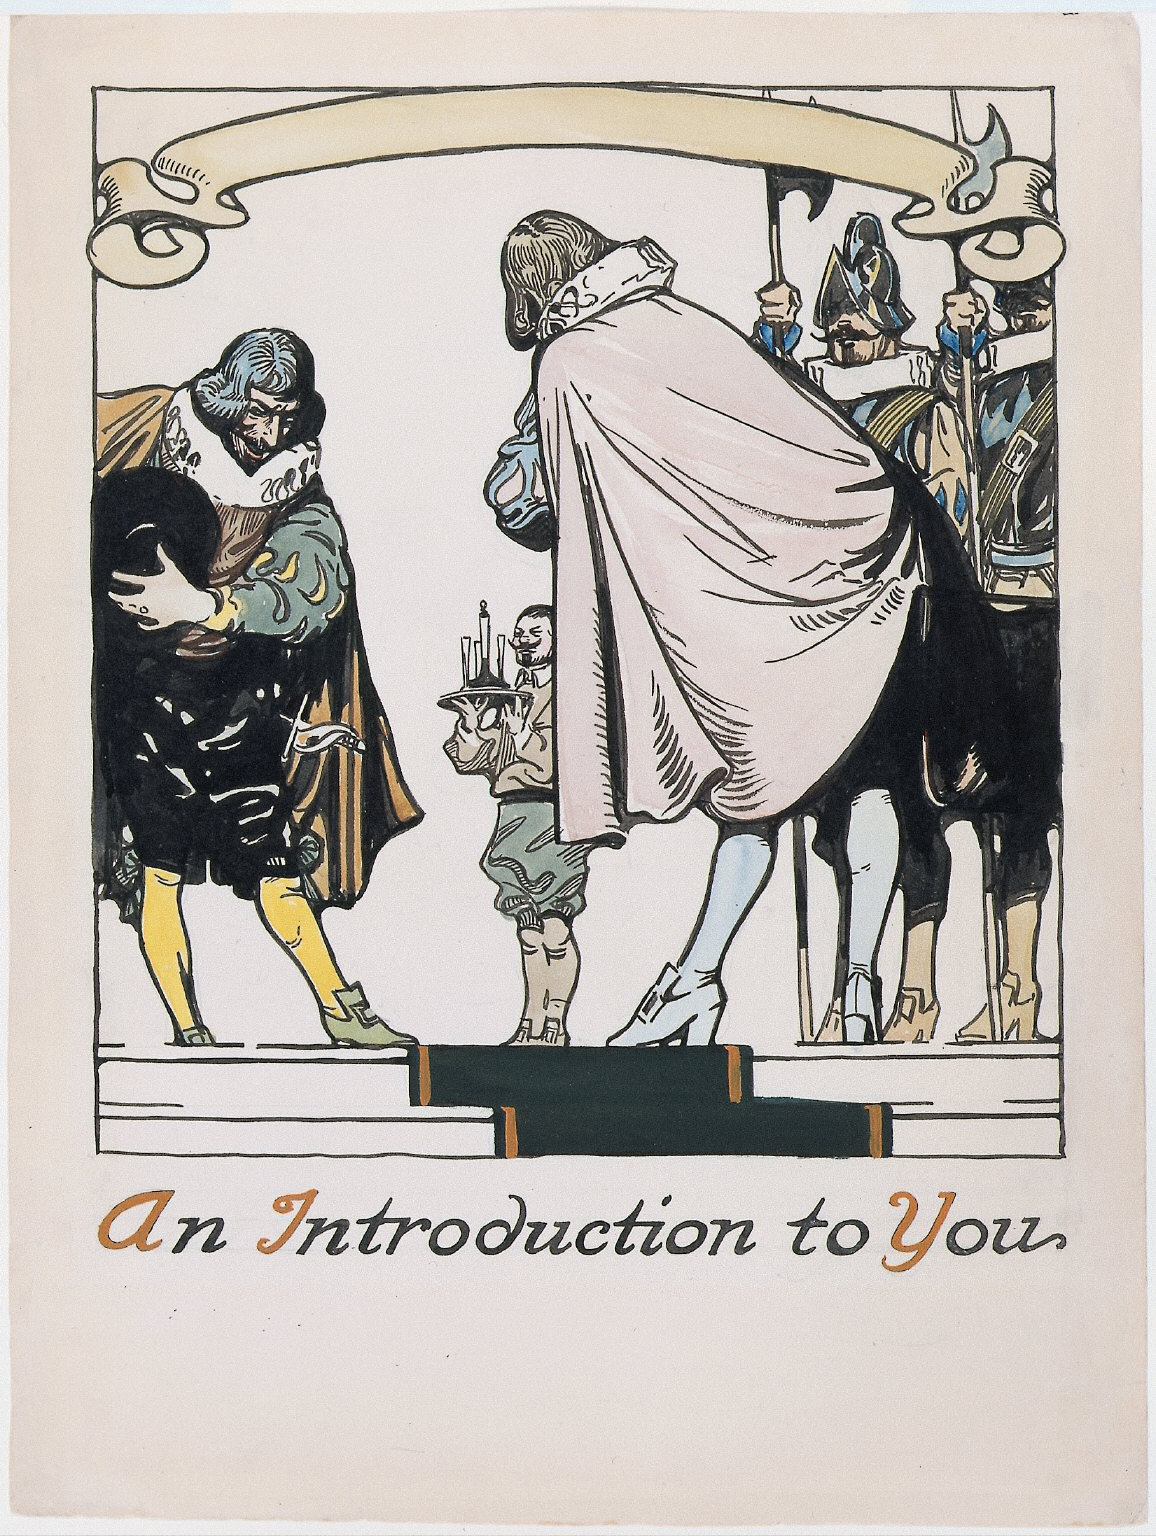 An Introduction to You